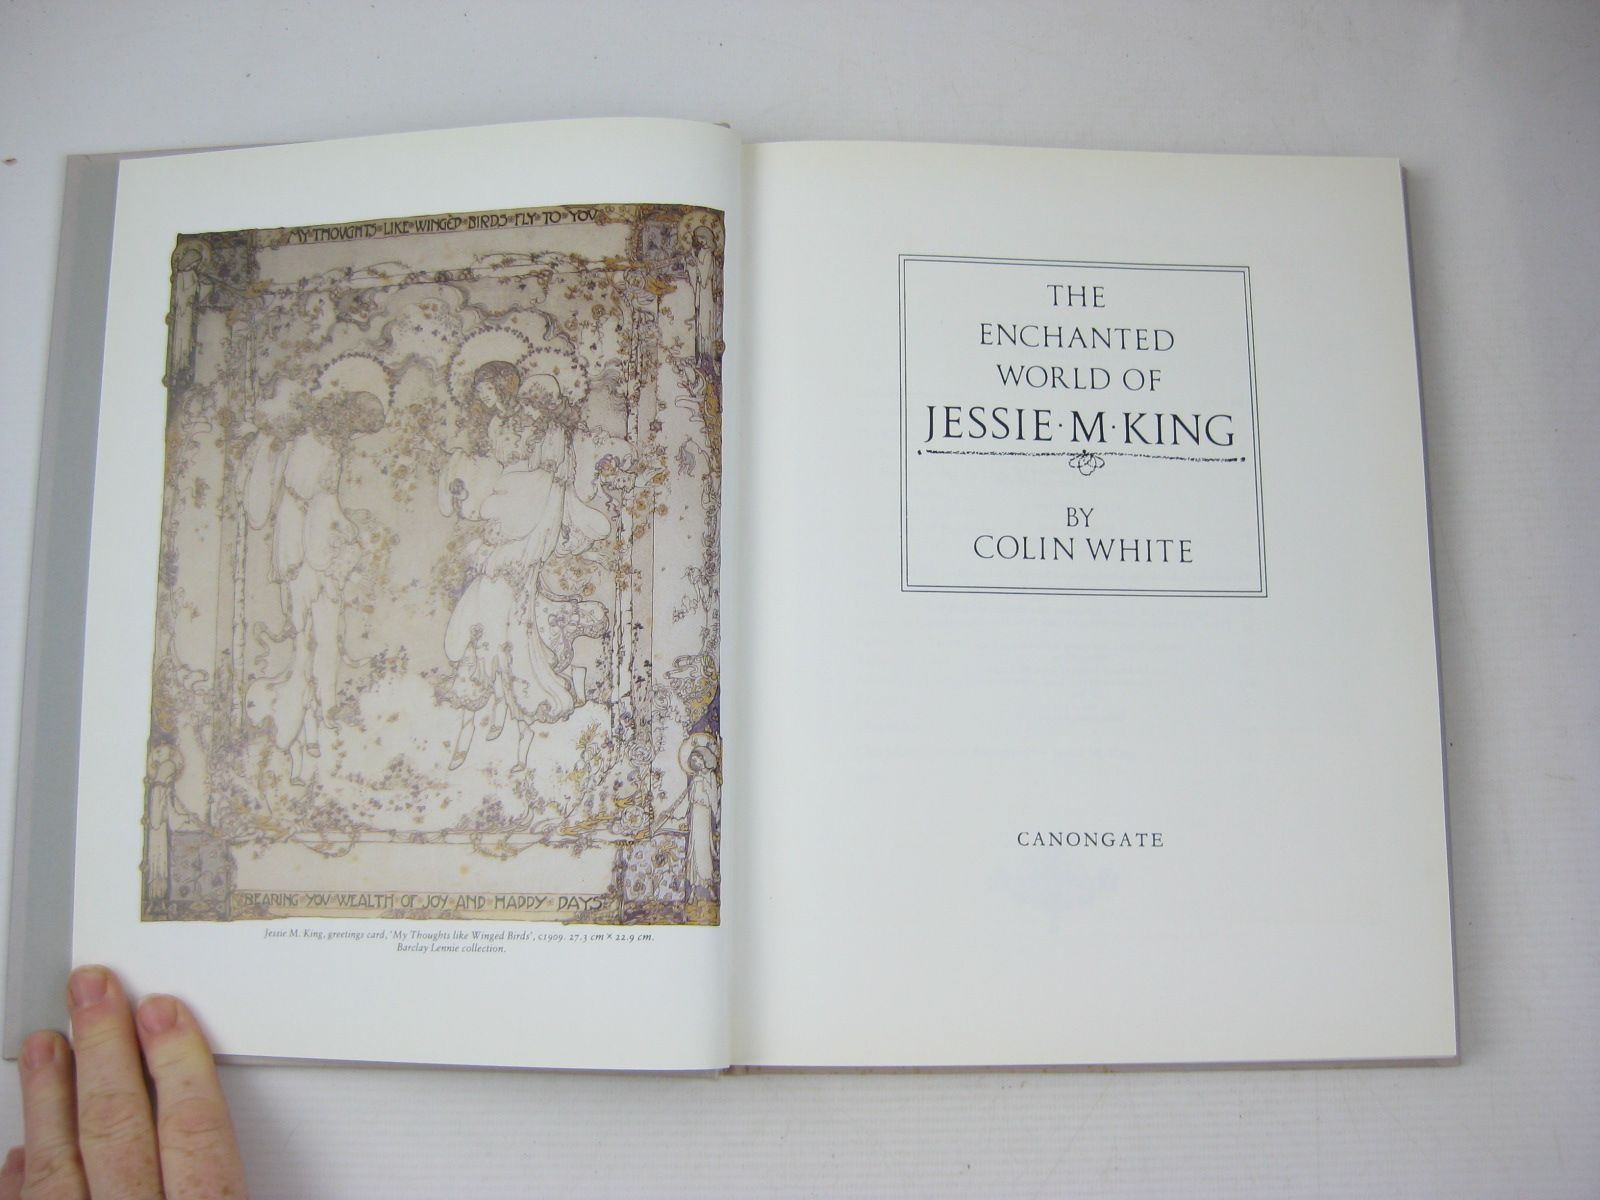 Photo of THE ENCHANTED WORLD OF JESSIE M. KING written by White, Colin illustrated by King, Jessie M. published by Canongate Publishing Limited (STOCK CODE: 1314300)  for sale by Stella & Rose's Books